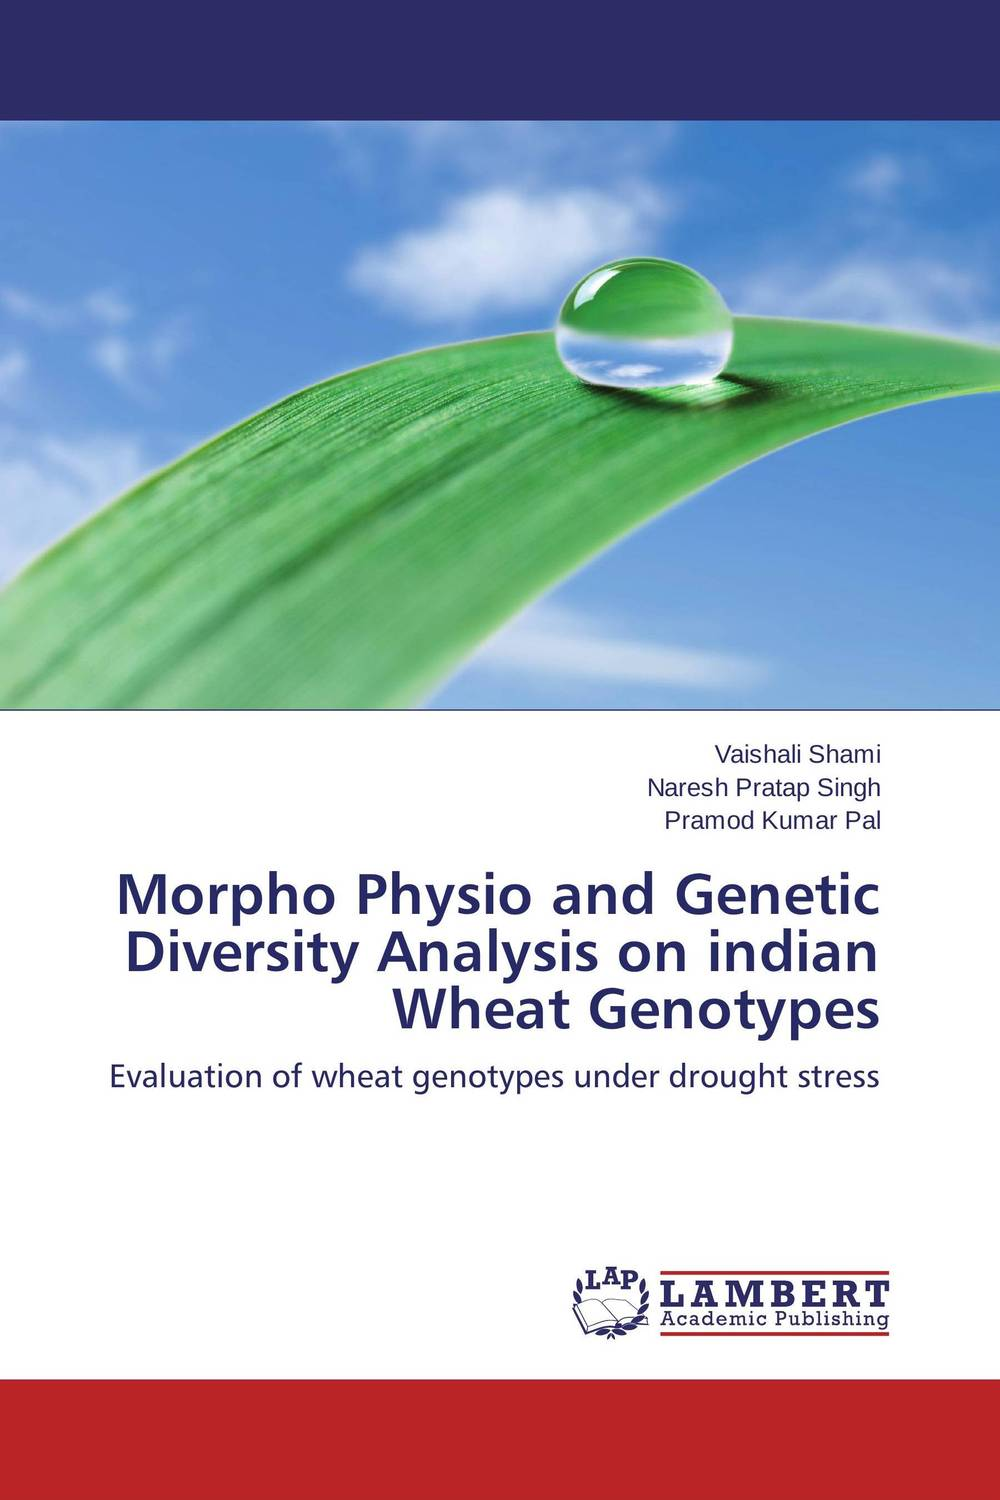 Morpho Physio and Genetic Diversity Analysis on indian Wheat Genotypes vaishali shami naresh pratap singh and pramod kumar pal morpho physio and genetic diversity analysis on indian wheat genotypes